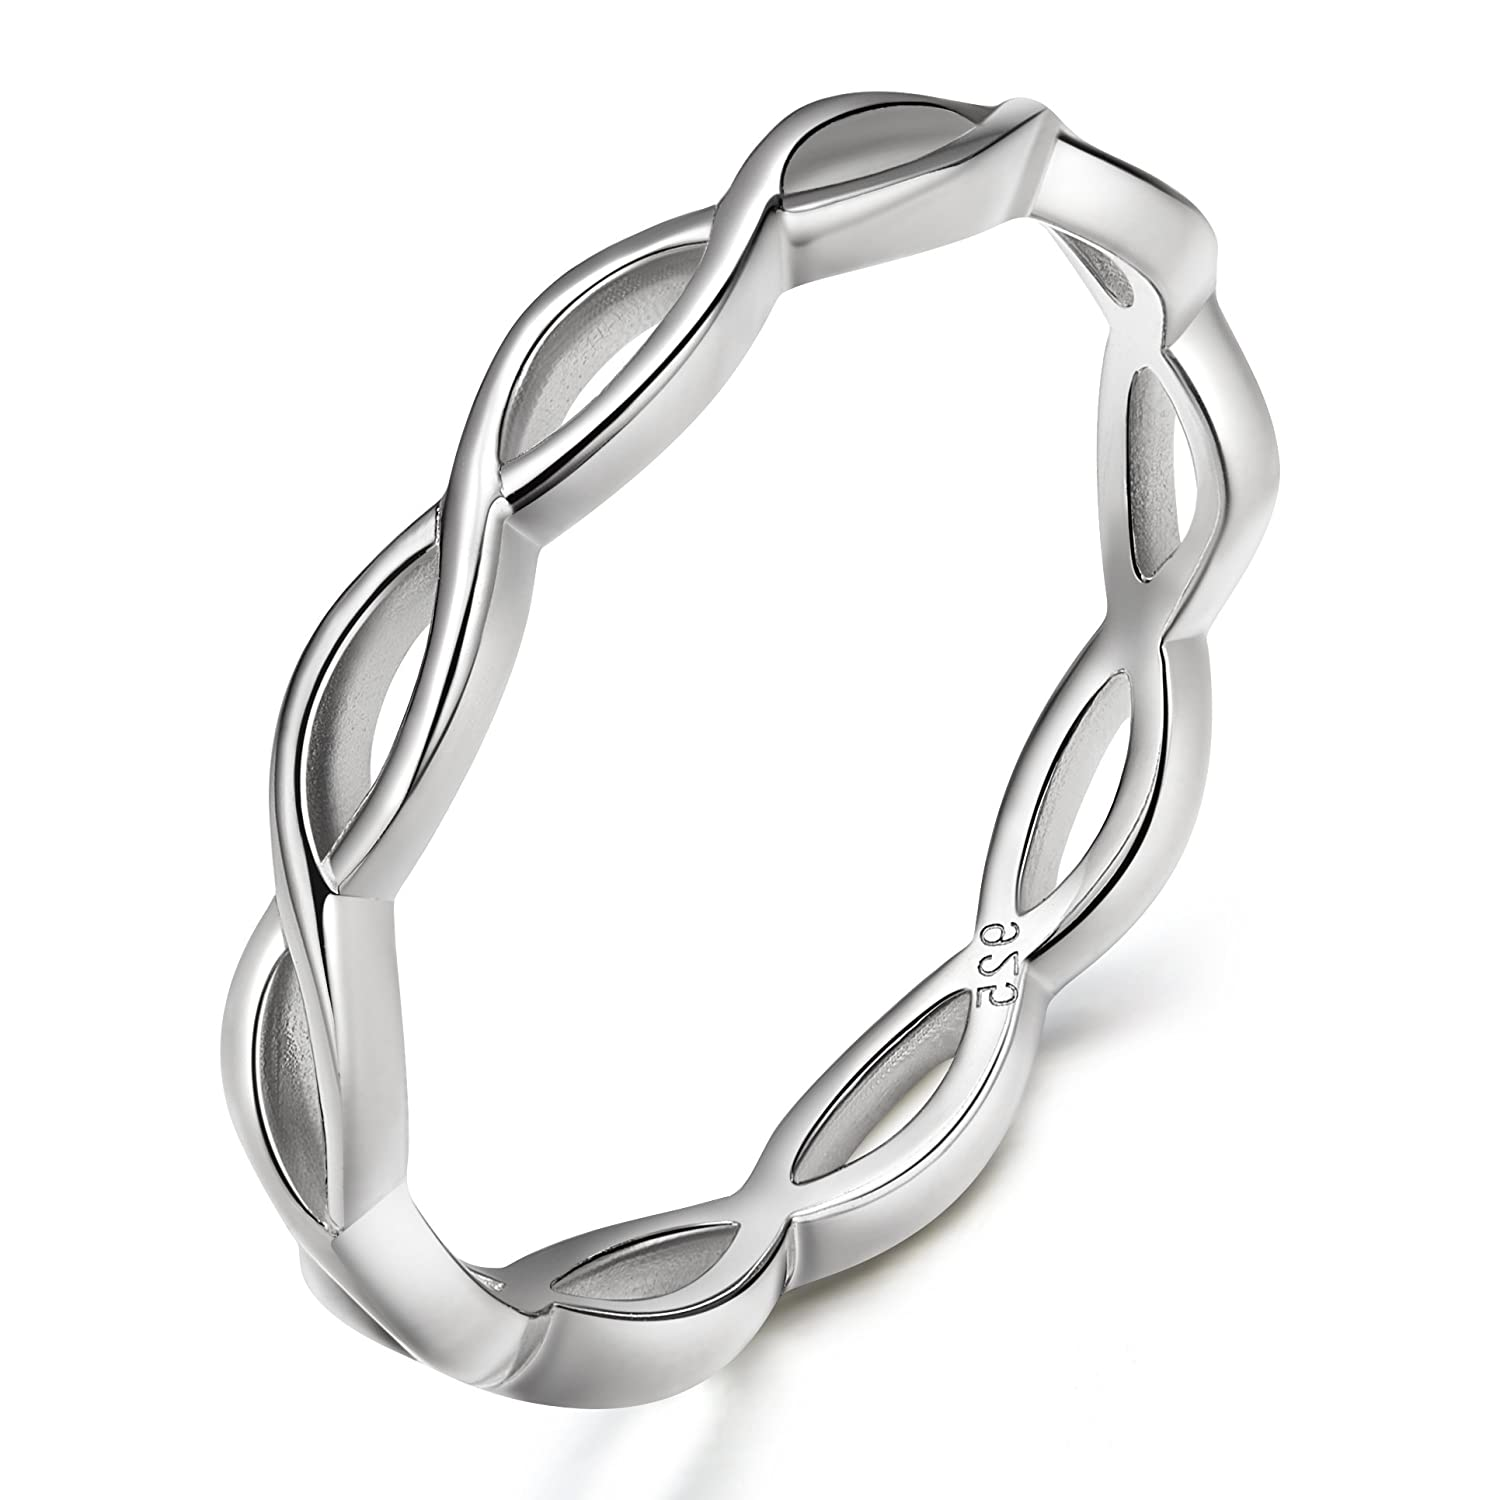 EAMTI 925 Sterling Silver Celtic Knot Ring Simple Criss Cross Infinity Wedding Band for Women Size 4-11 SOMEN